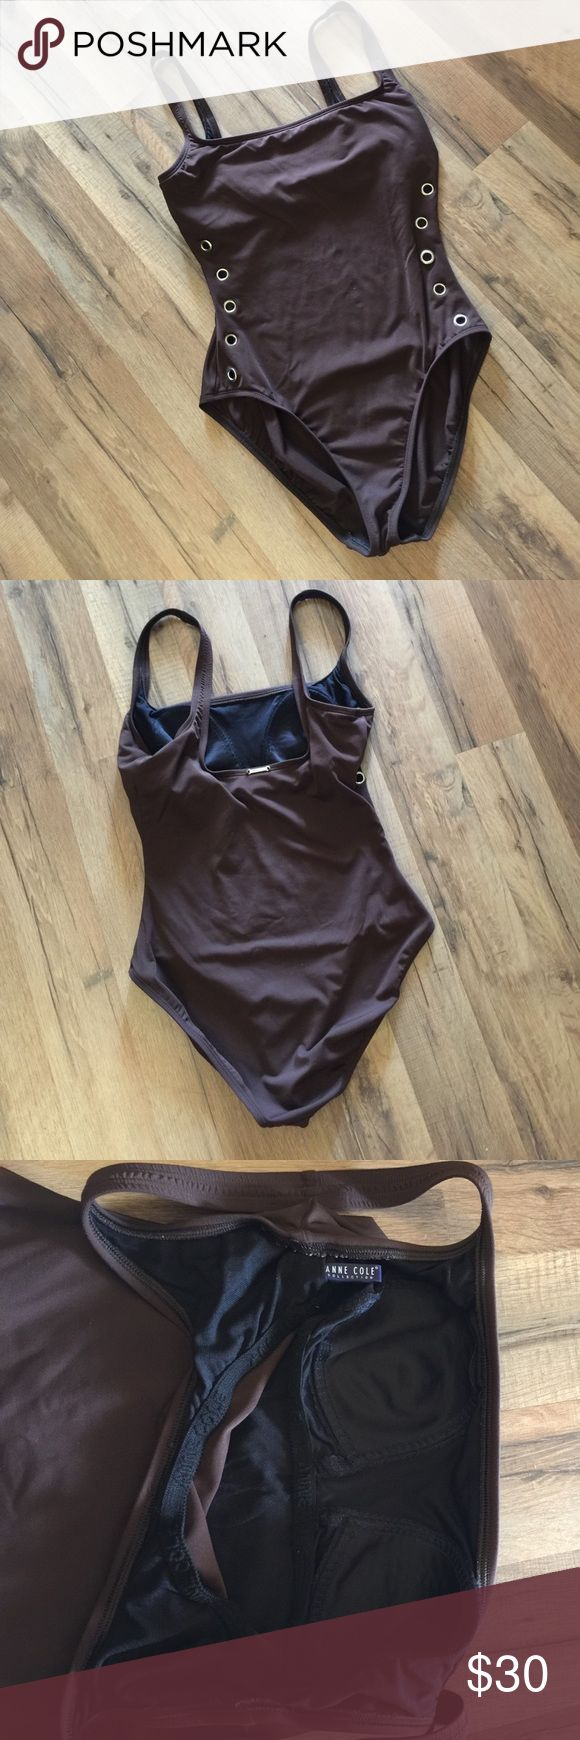 Anne Cole studded one piece Anne Cole collection. Brown swimsuit with see thru studs on sides. Very sexy classy suit, excellent condition. Fits size 6/8 best anne cole Swim One Pieces